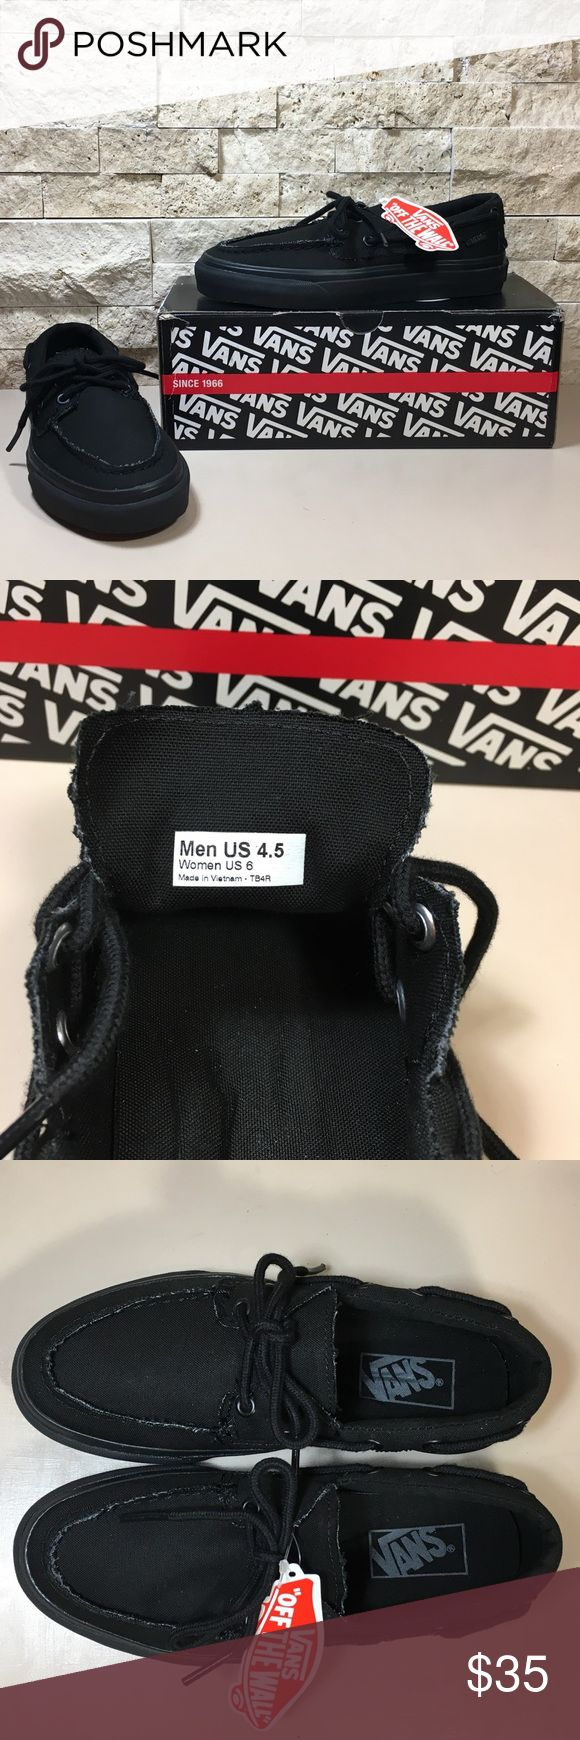 Vans Zapato Del Barco Black Shoes Vans Zapato Del Barco black canvas boat skate shoes sneakers. New with tags and box. Womens size 6, Men's size 4.5.  f175 Vans Shoes Sneakers